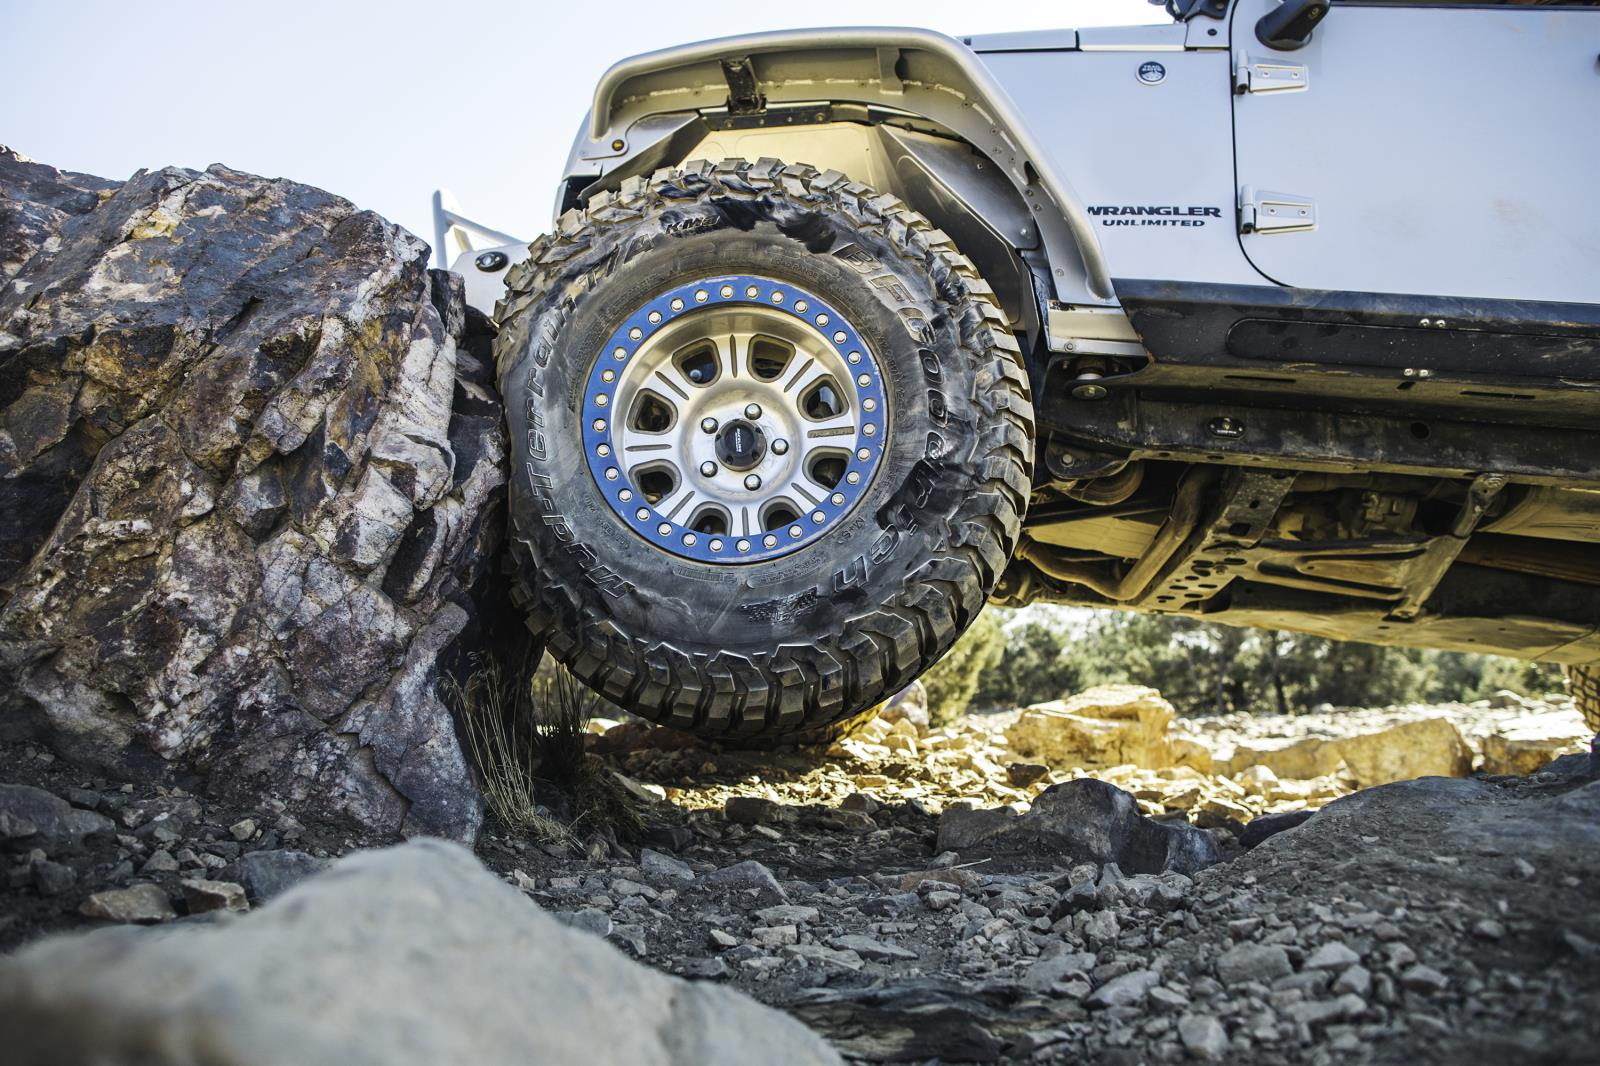 Truck Mud Tires >> BFGoodrich Launches KM3 Mud Tire :: BFGoodrich North America Newsroom